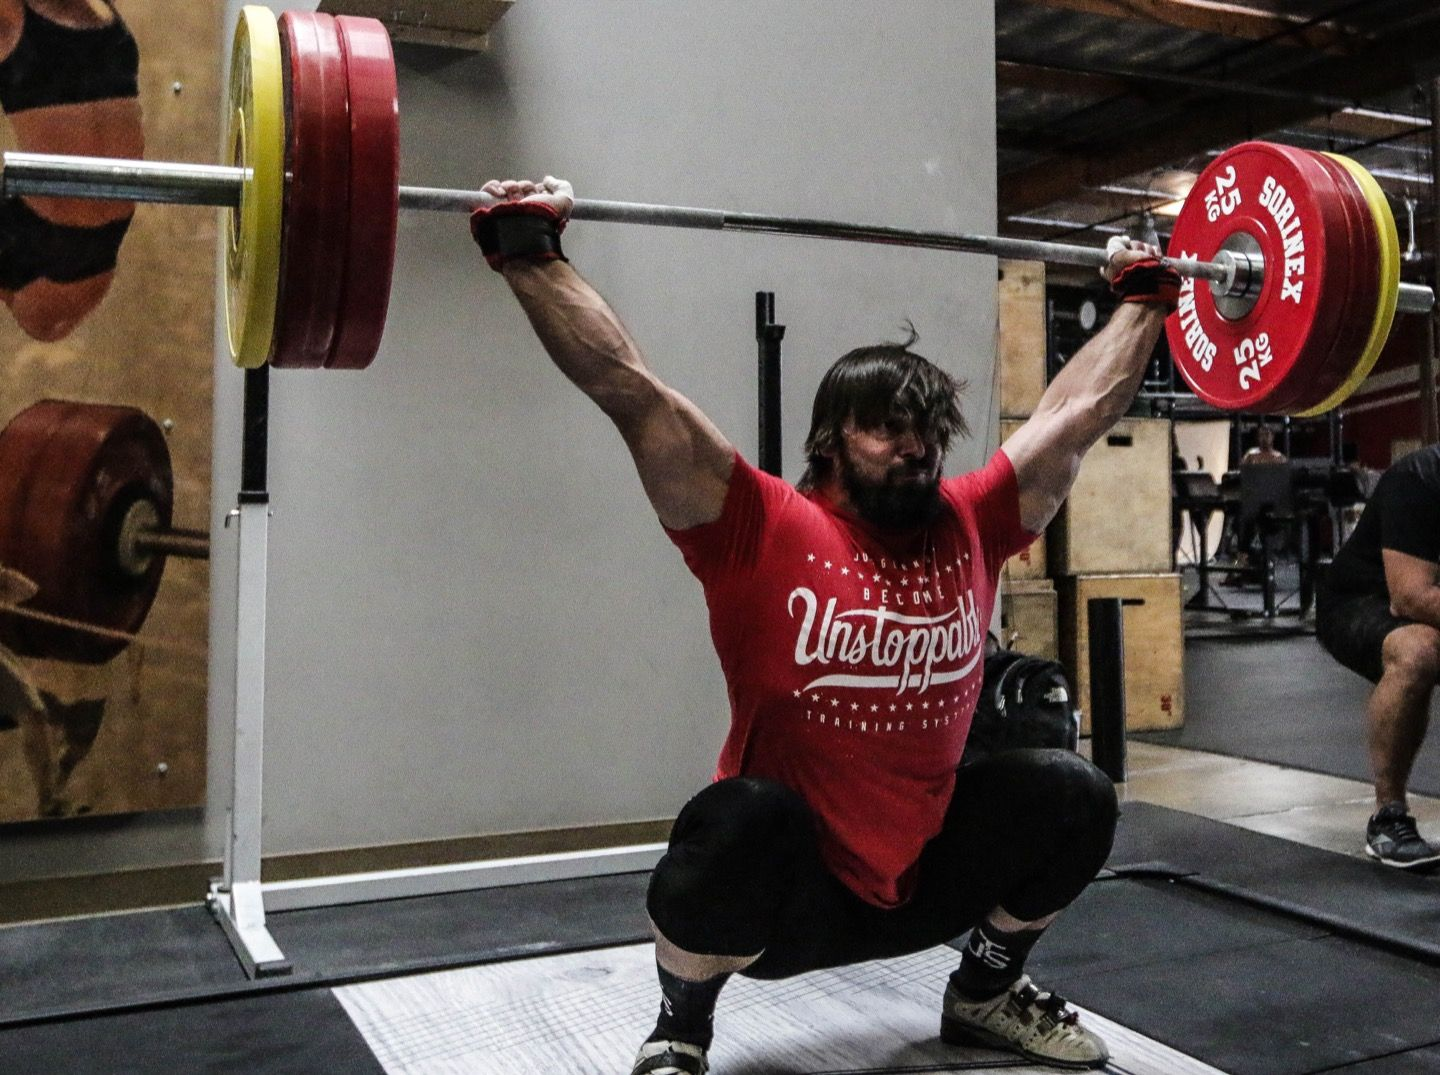 Shoulder Position for the Overhead Squat - Juggernaut